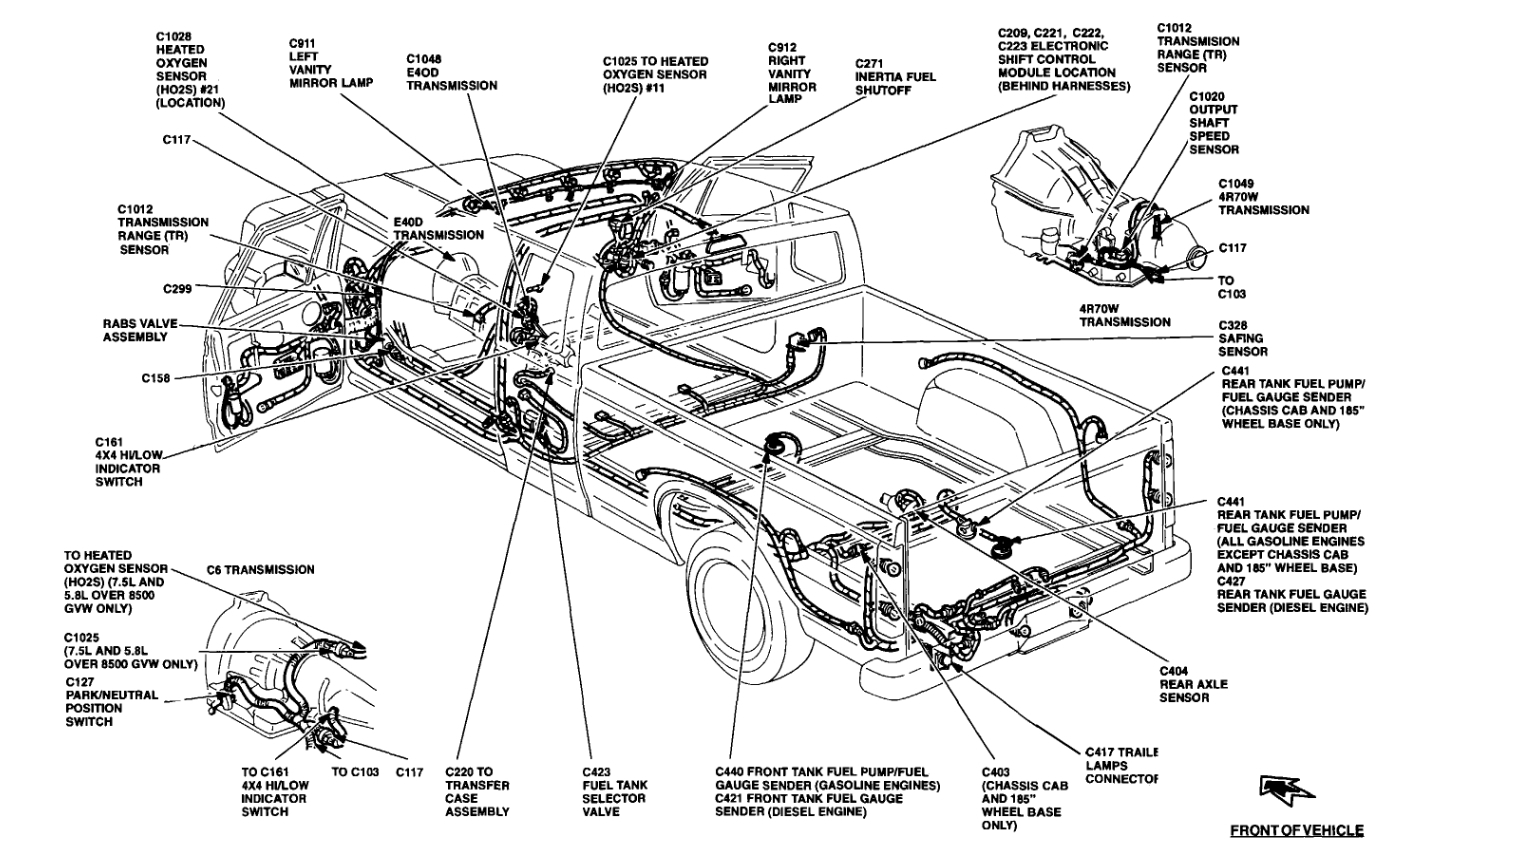 hight resolution of f150 dual fuel tank diagram wiring diagram sort 1996 ford f150 fuel system diagram ford f150 fuel tank diagram